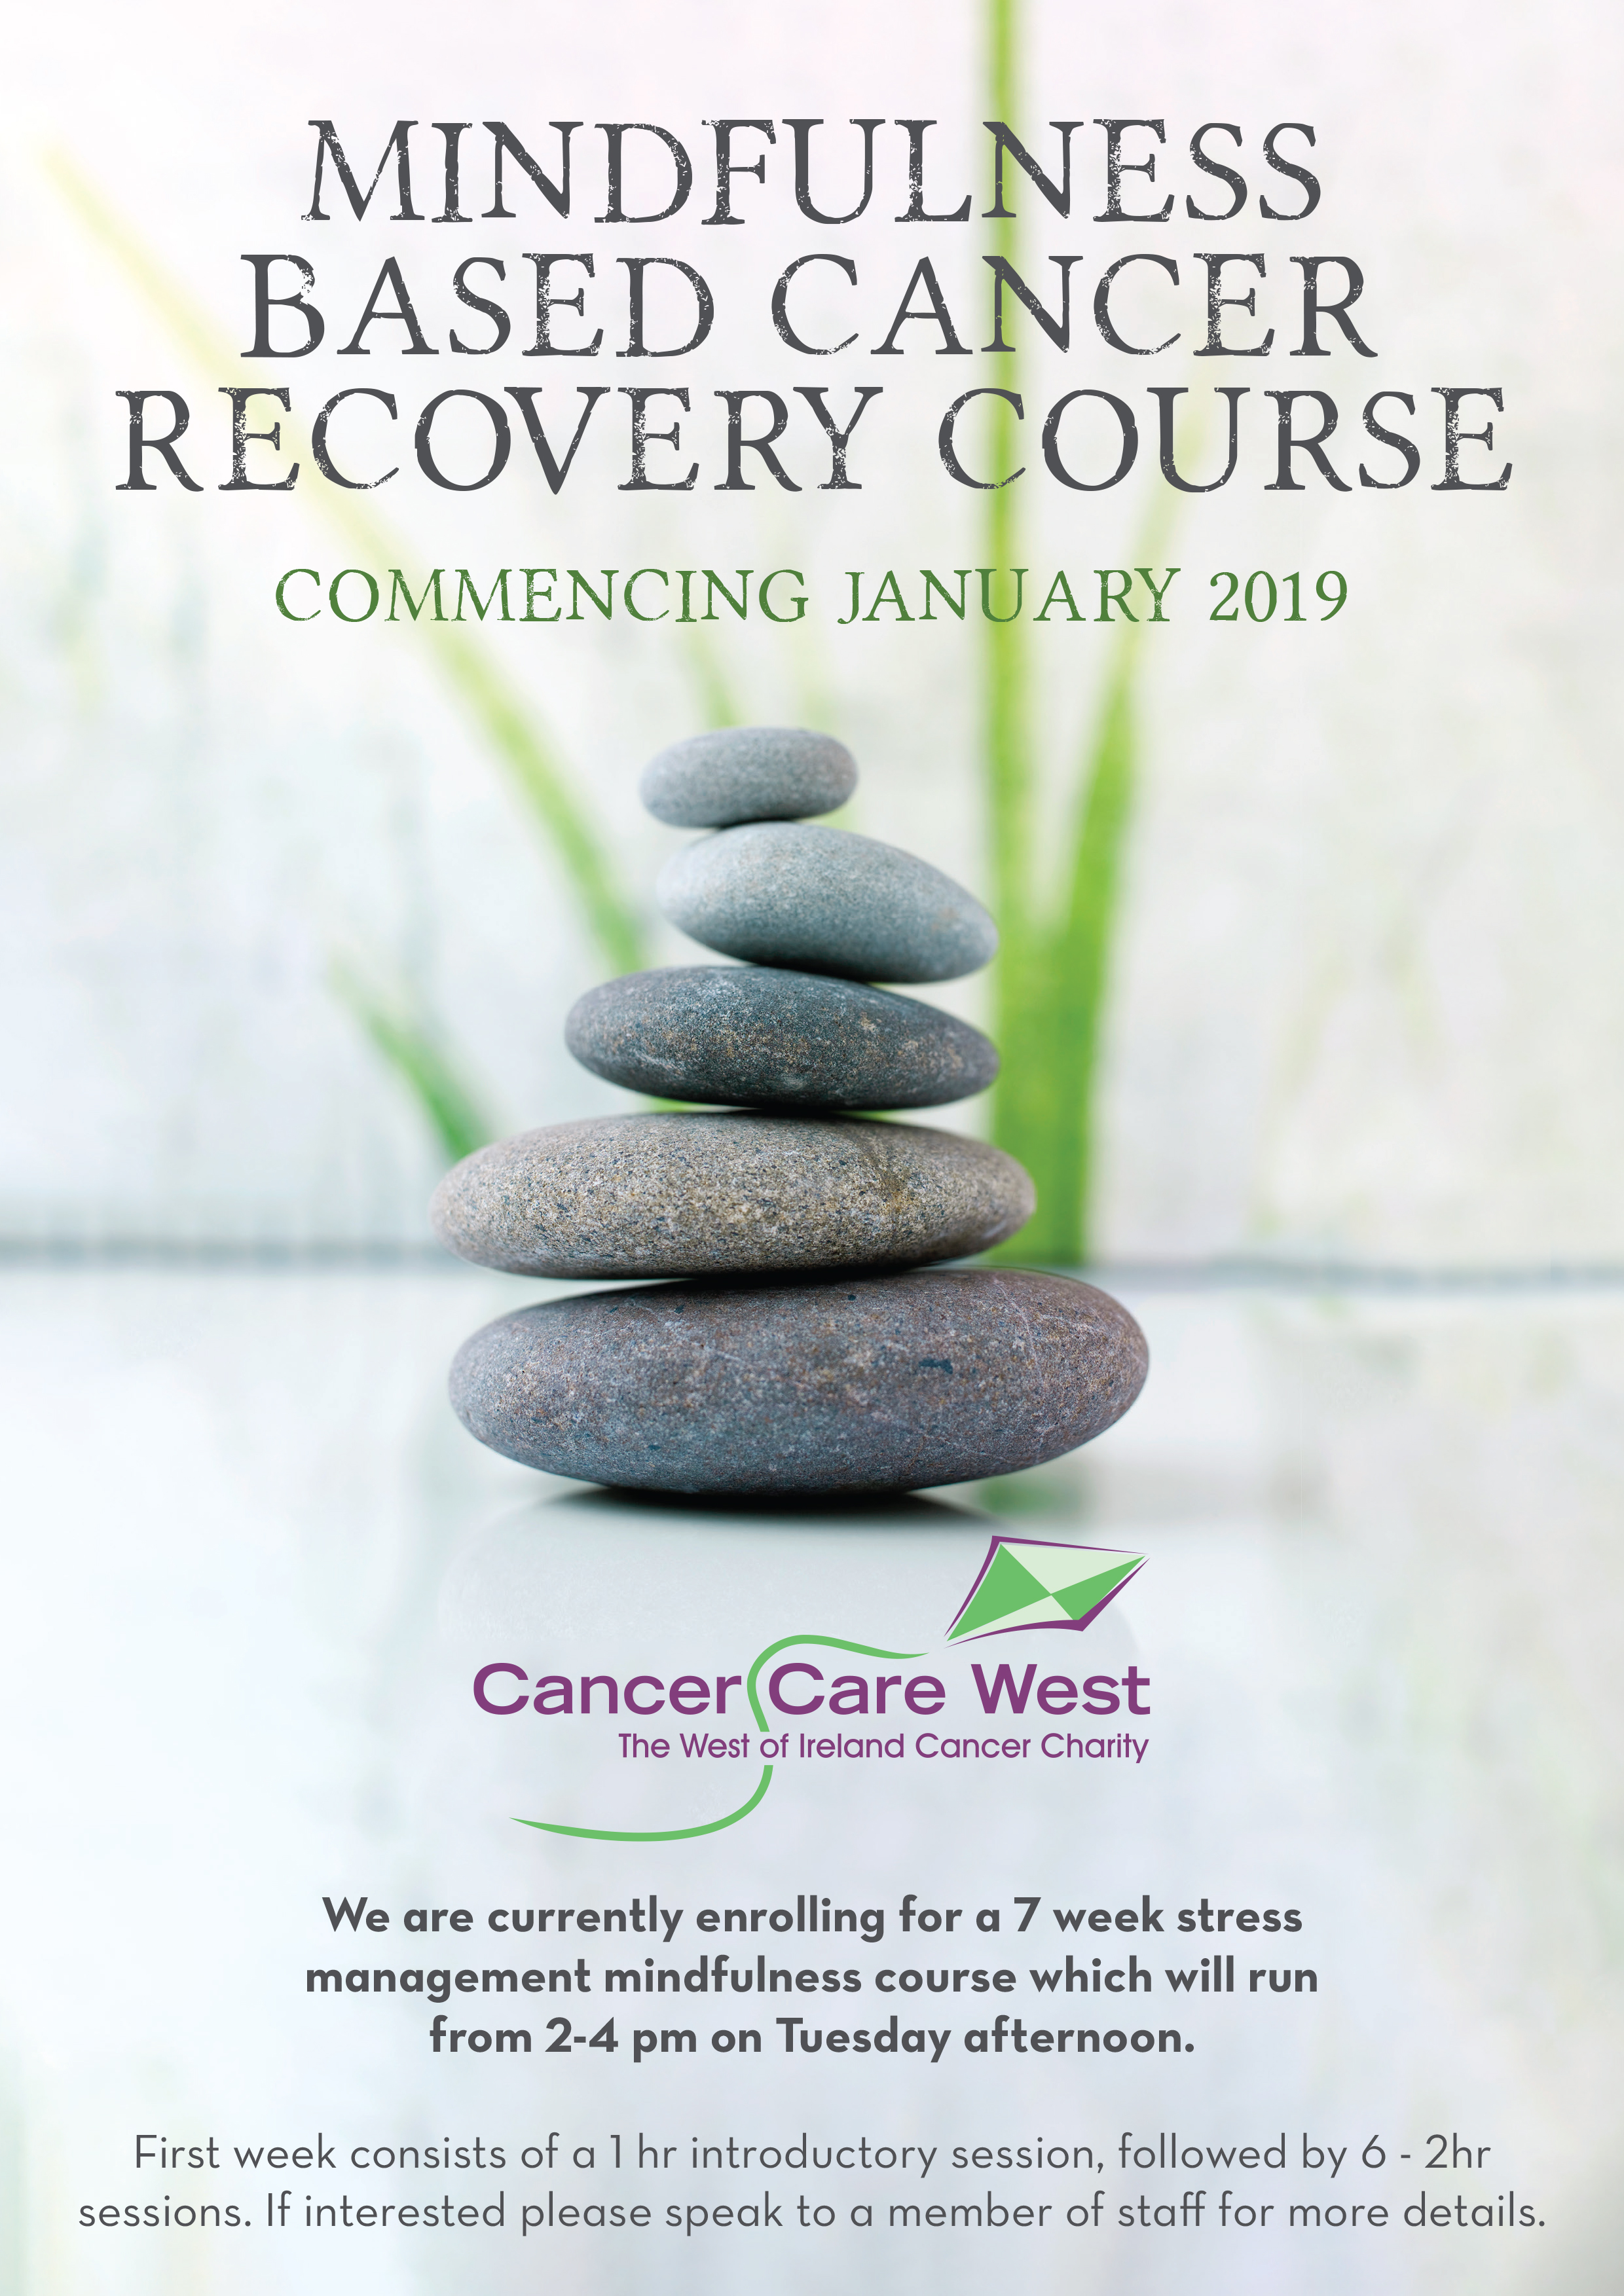 Mindfullness Based Cancer Recovery Course Cancer Care West